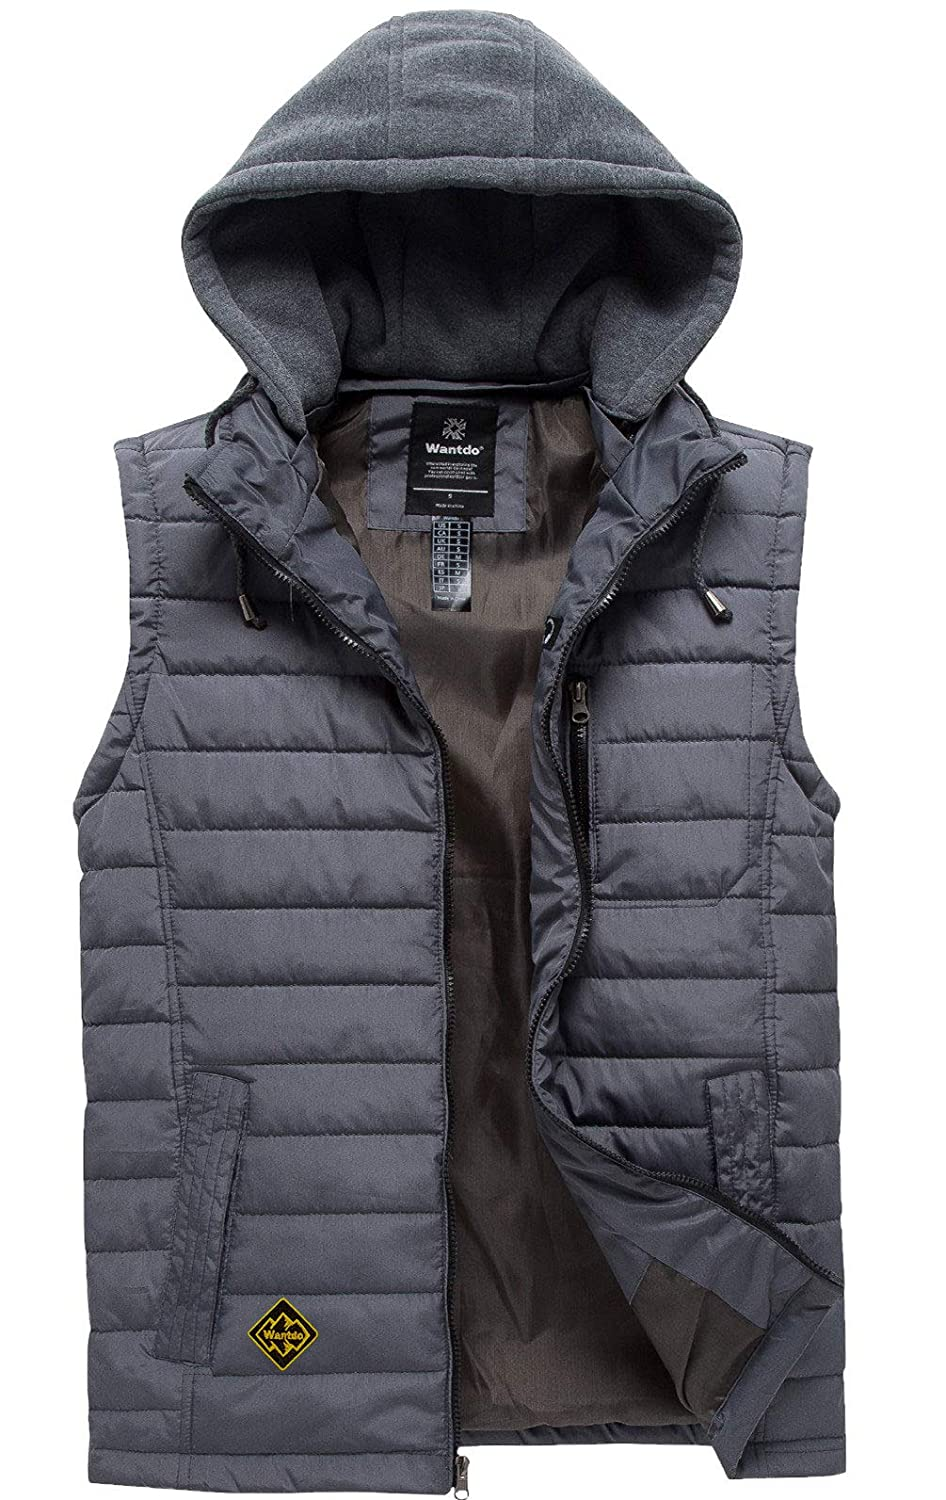 Wantdo Mens Puffer Vest Warm Sleeveless Winter Jacket with Removable Hood